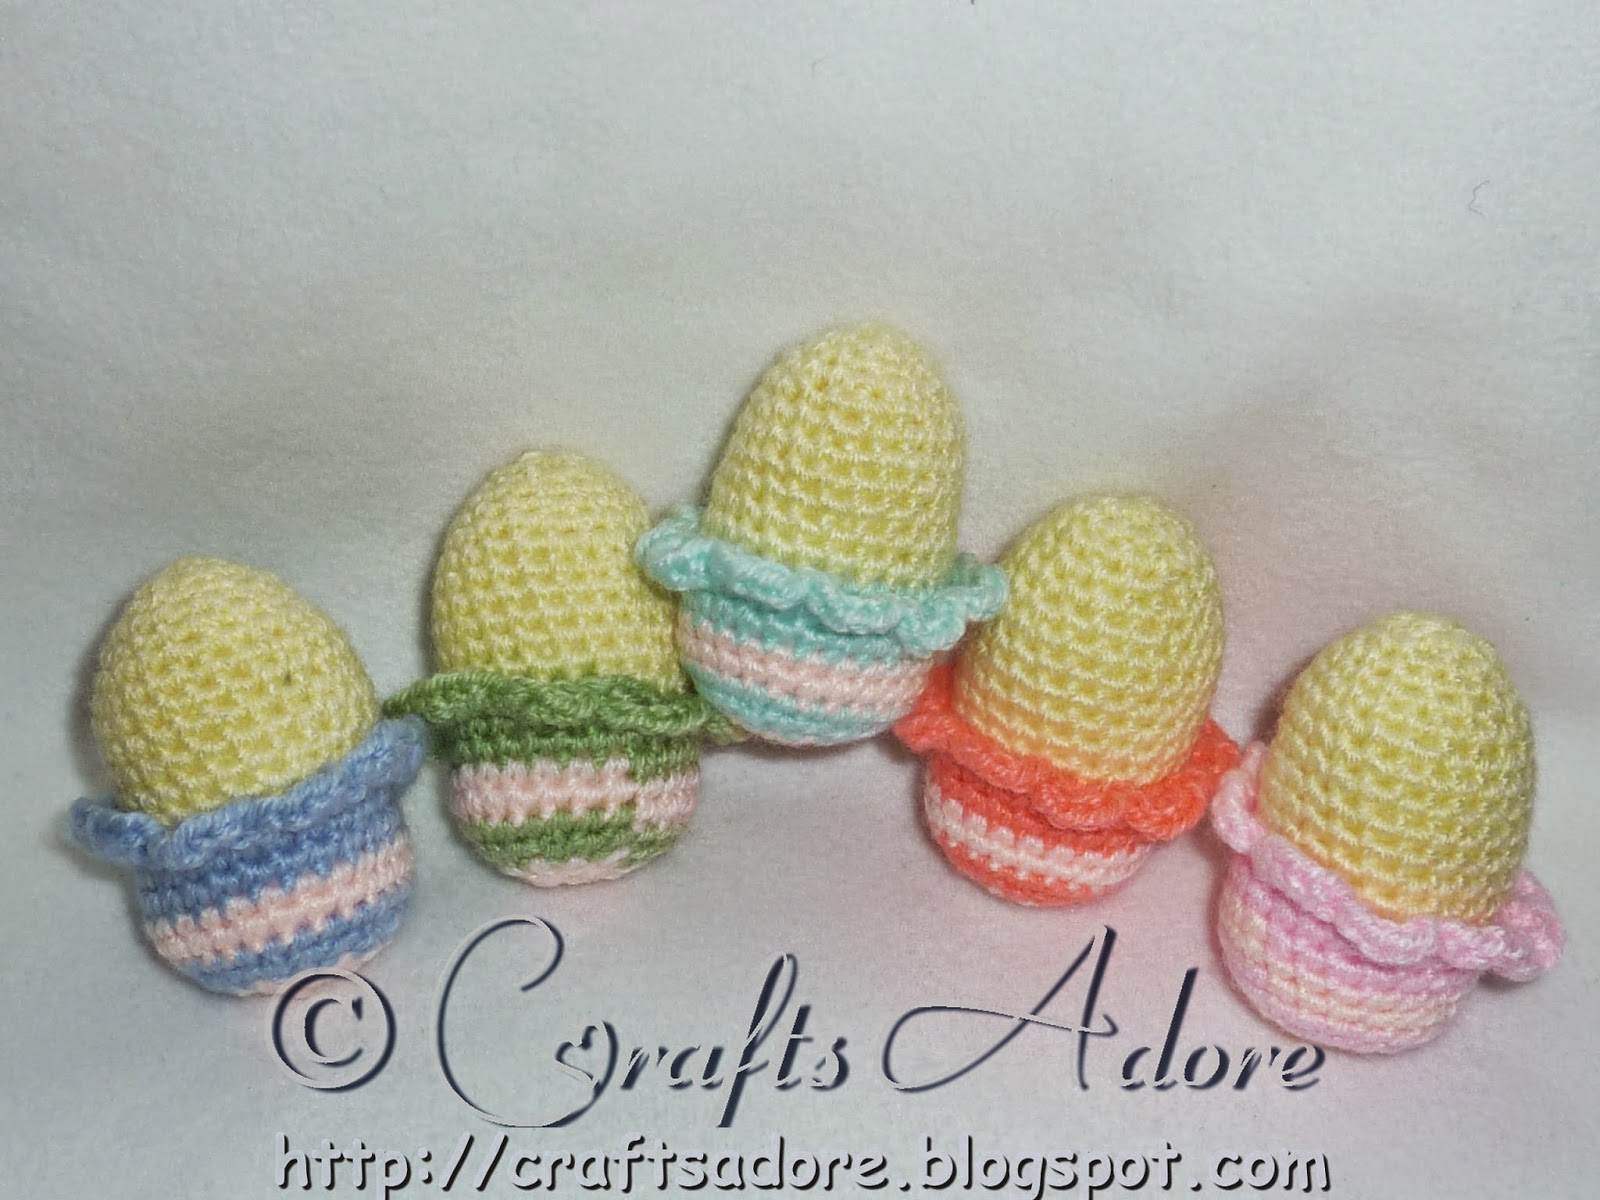 Little Chirpy Chicks waiting to Hatch Amigurumi Soft Toy